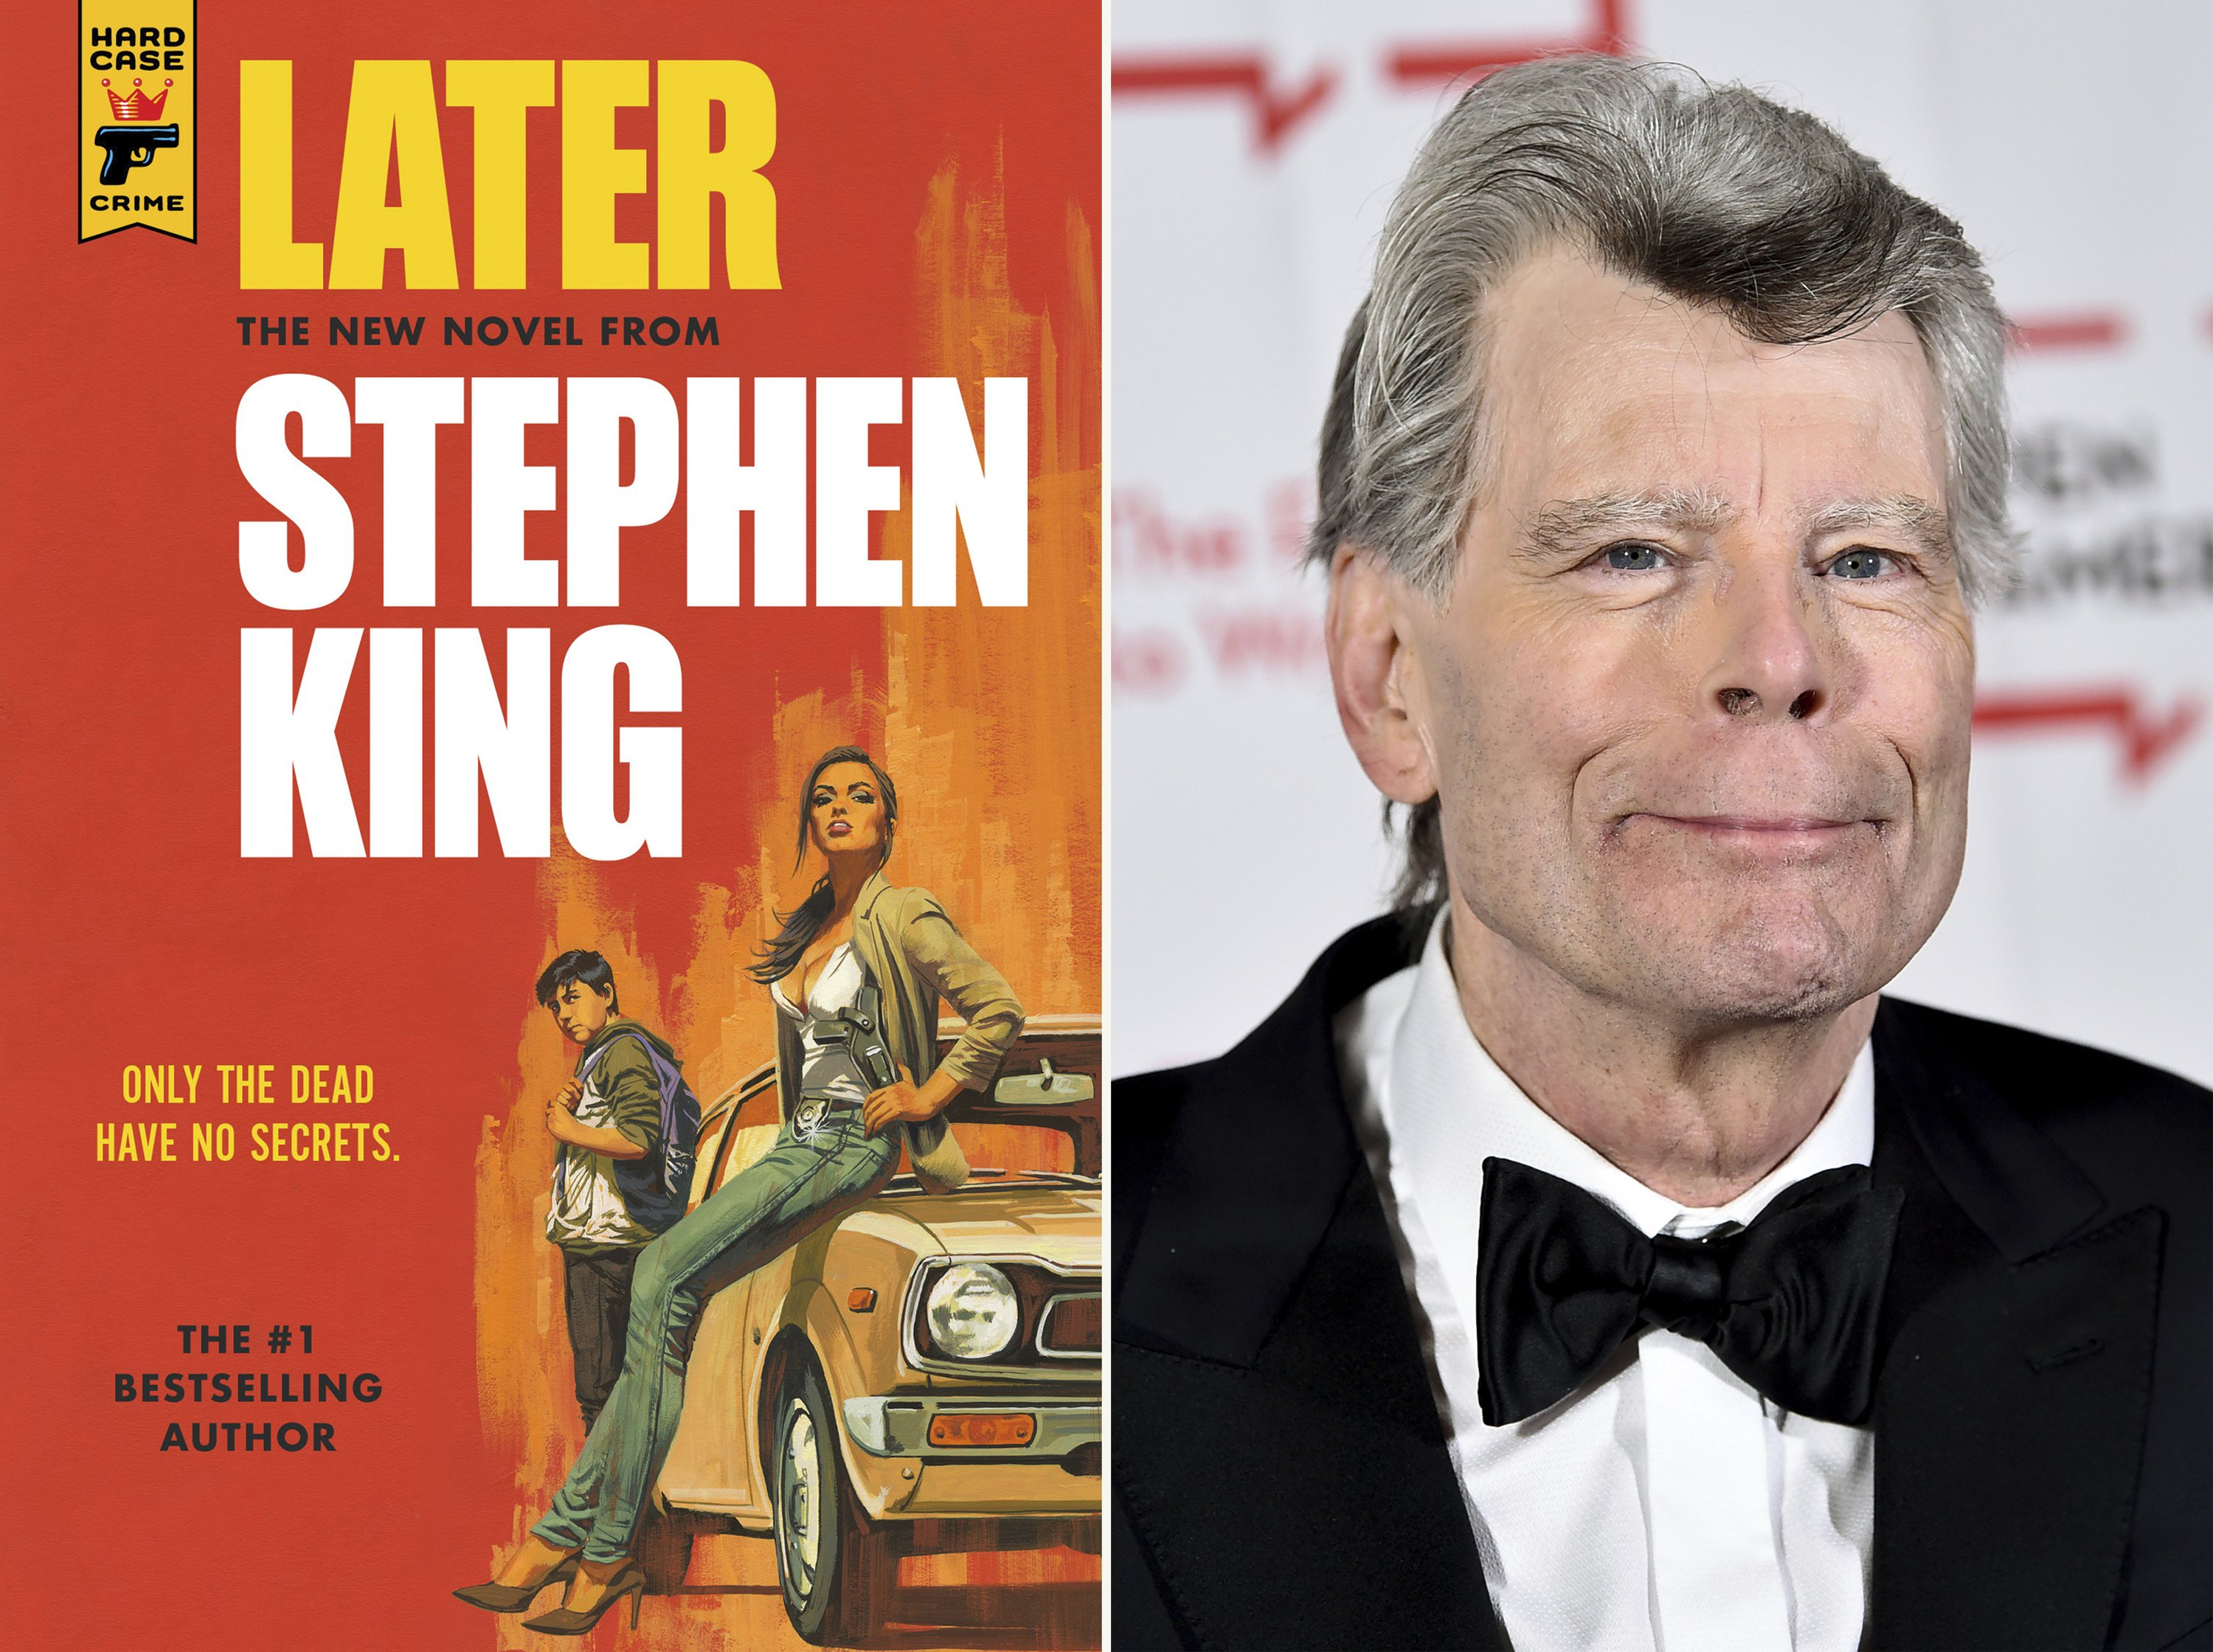 Stephen King talks about crime, creativity and new novel